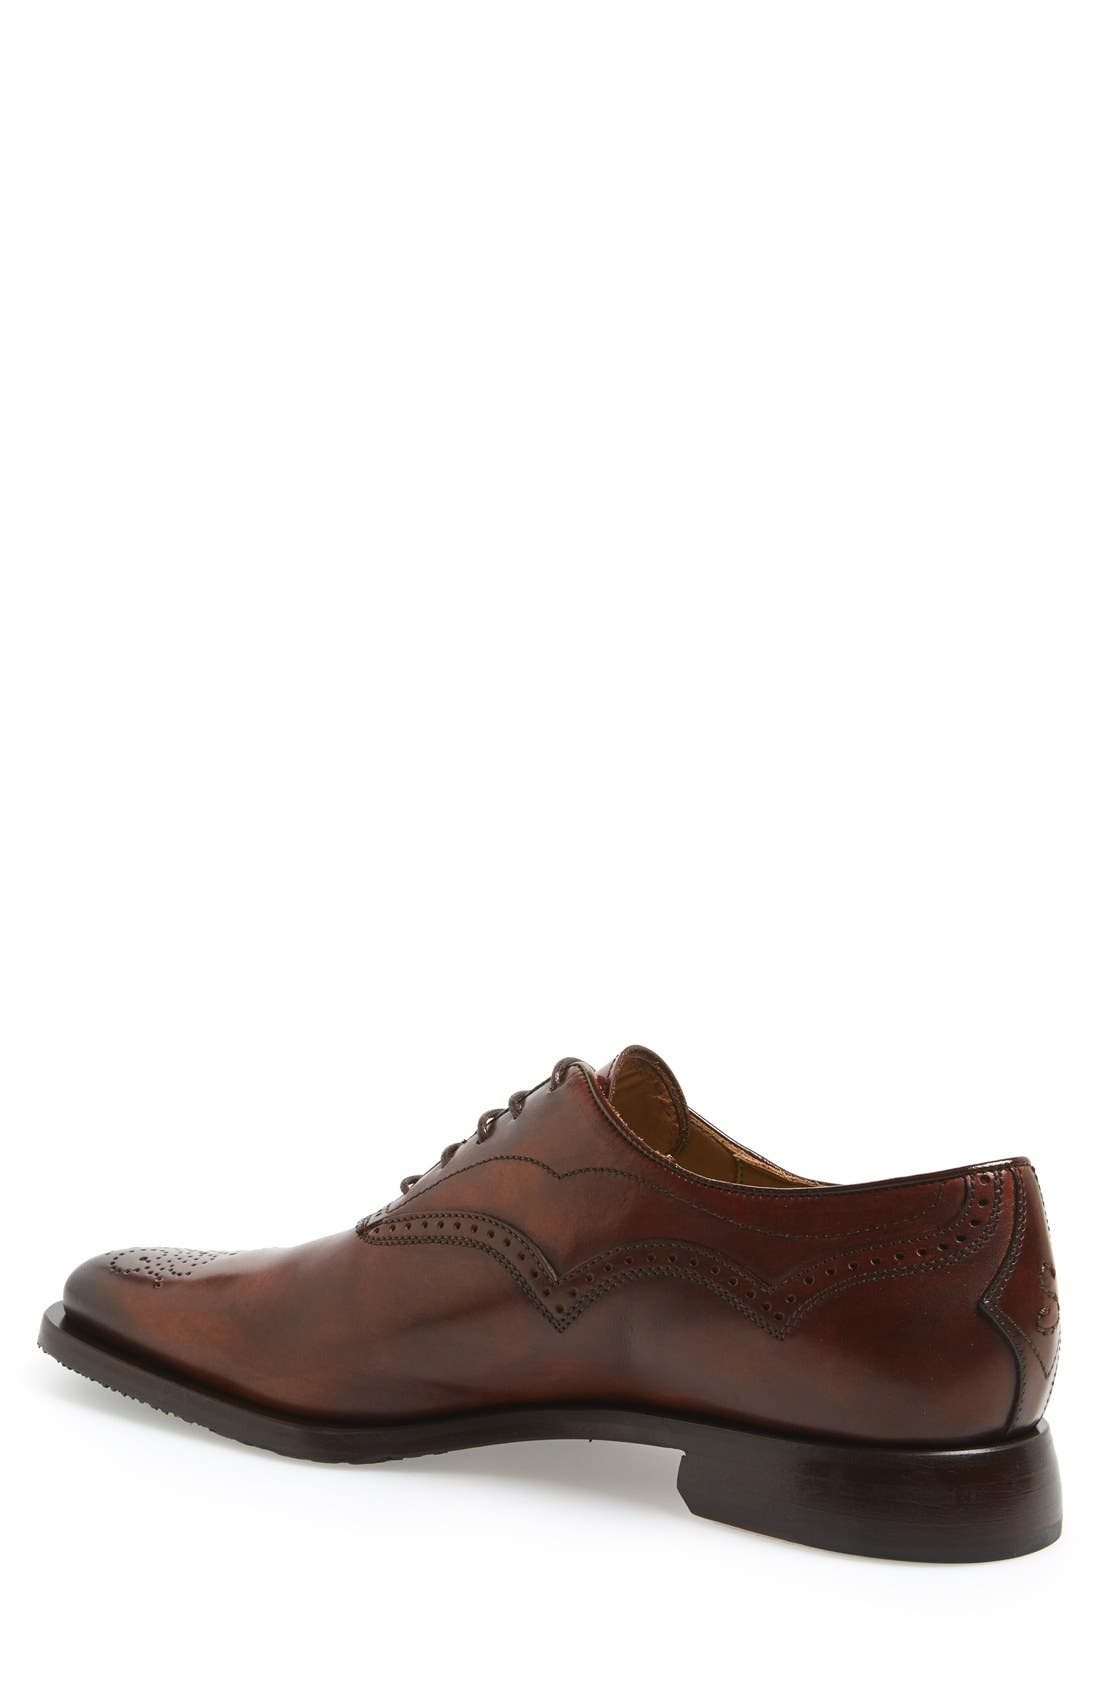 Alternate Image 2  - OLIVER SWEENEY PICOLIT CURVE BROGUE OXFORD